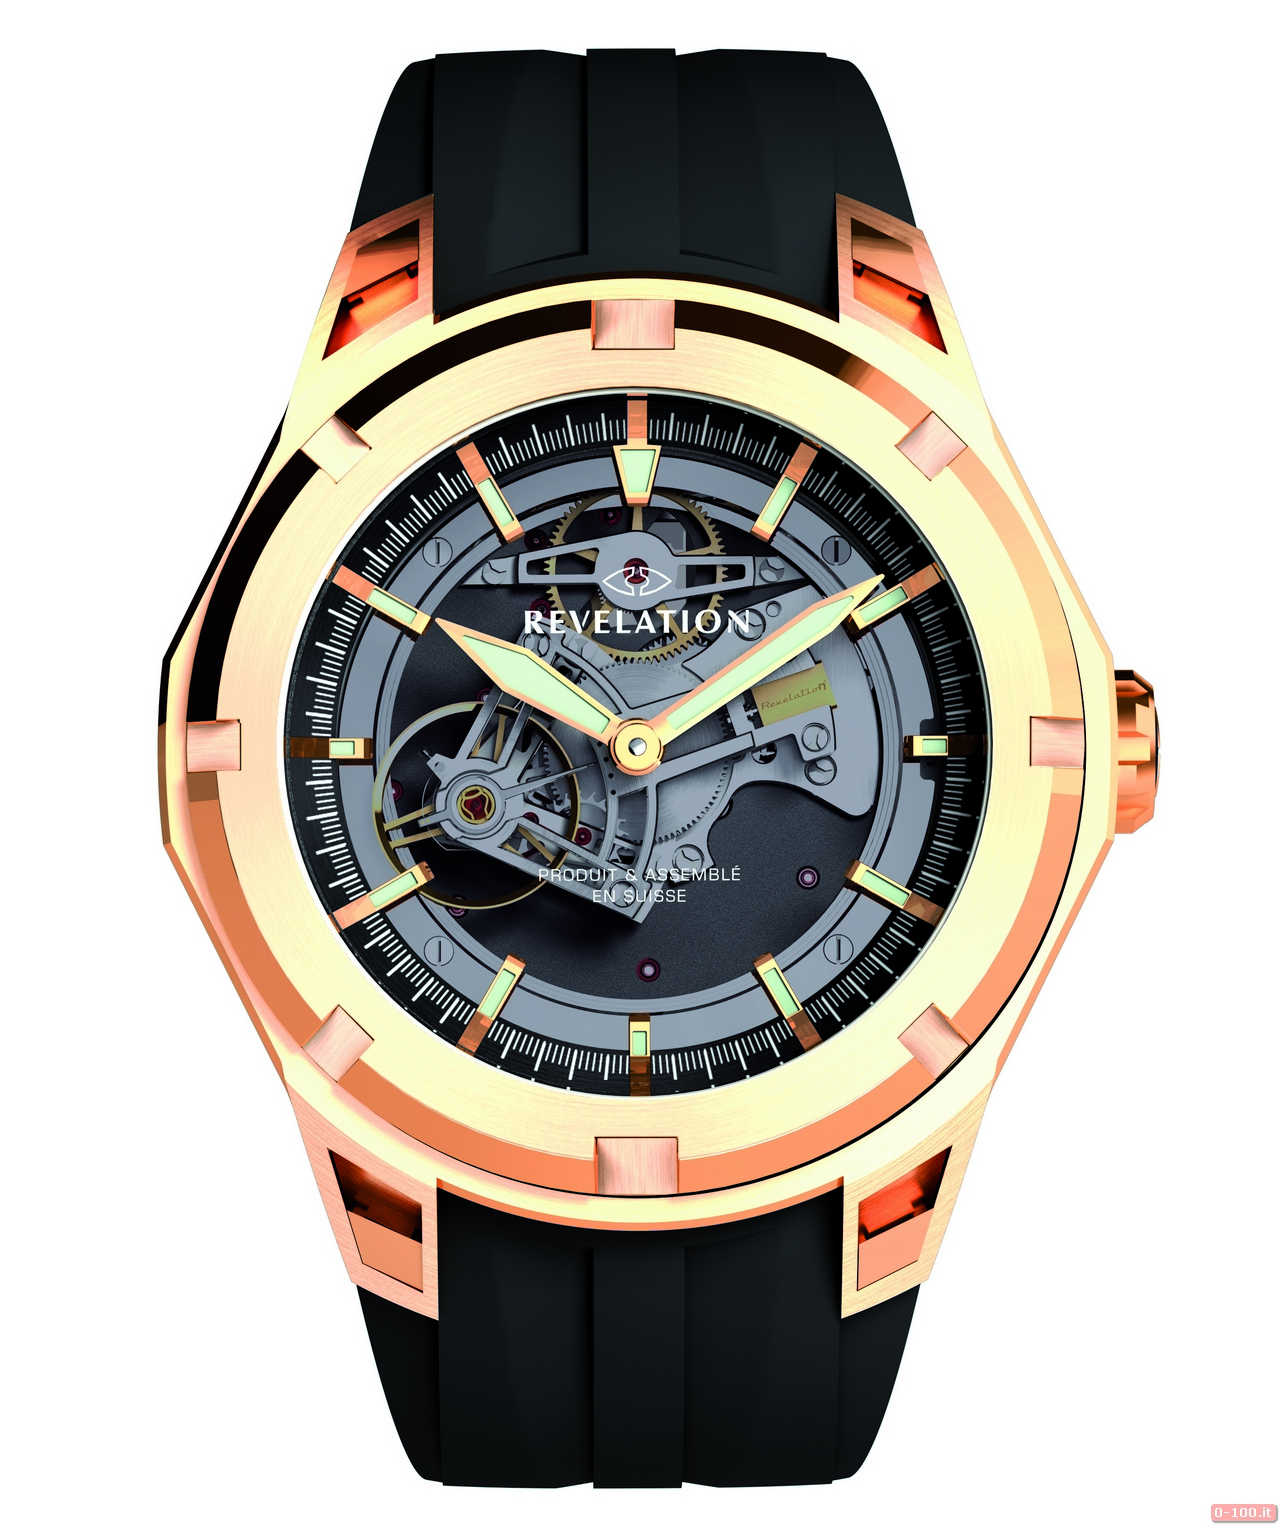 anteprima-baselword-2013-revelation-r04-tourbillon-magical-watch-dial_0-100_1